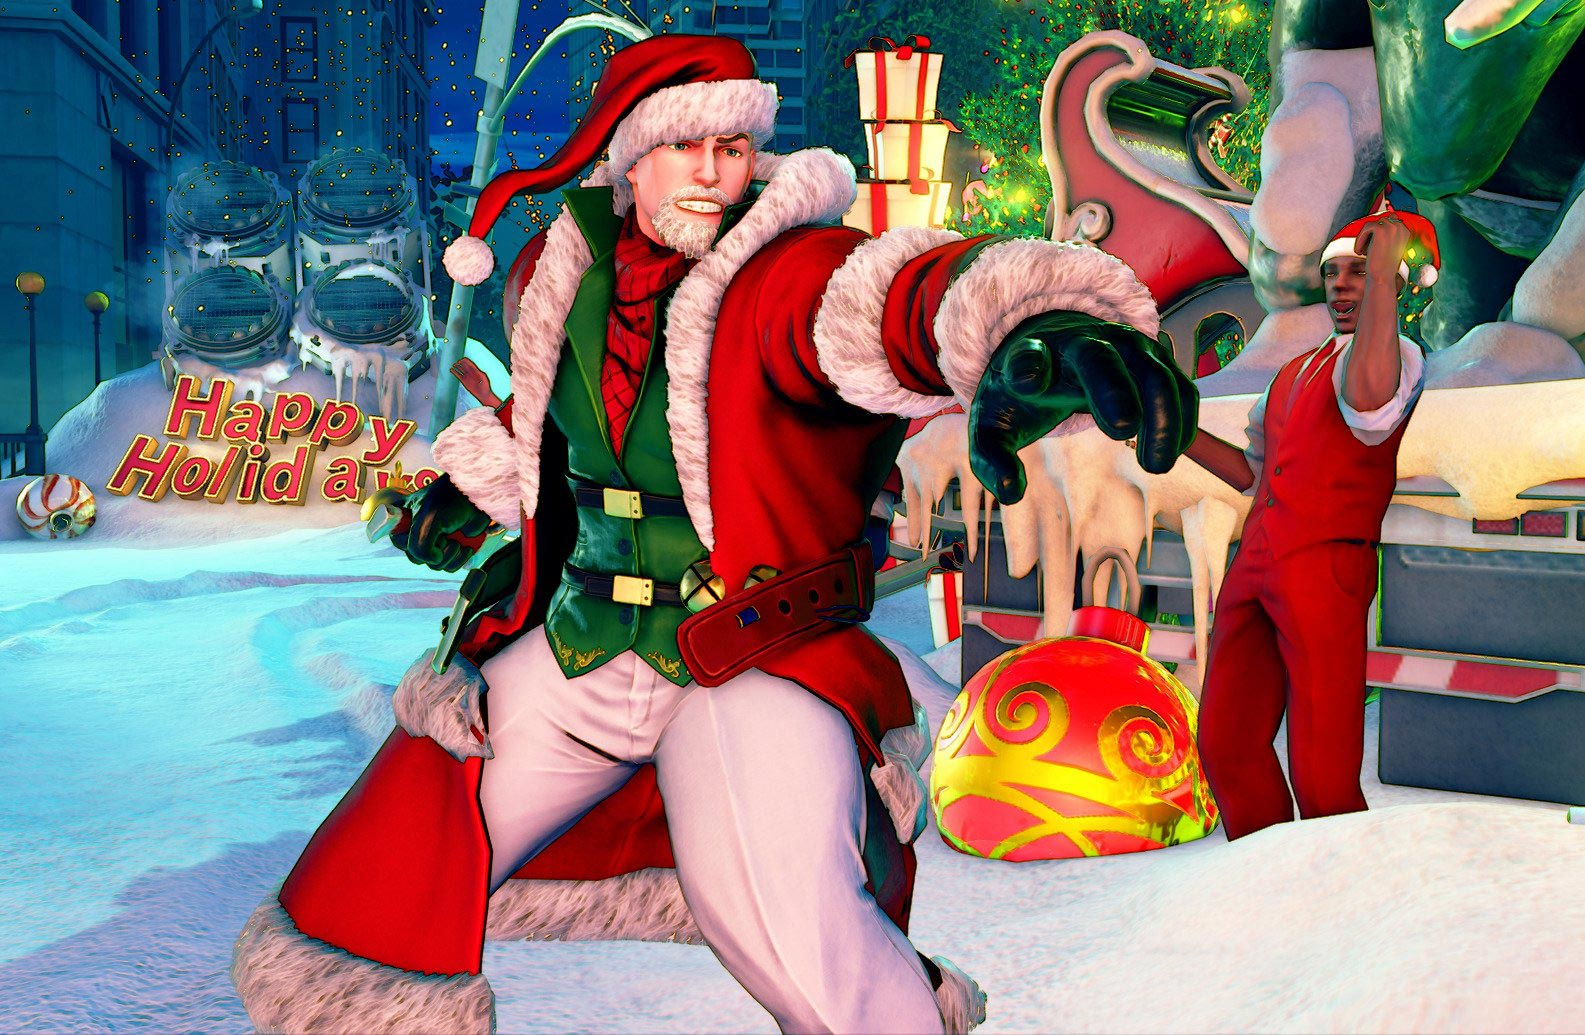 New Street Fighter 5 holiday costumes 2 out of 12 image gallery